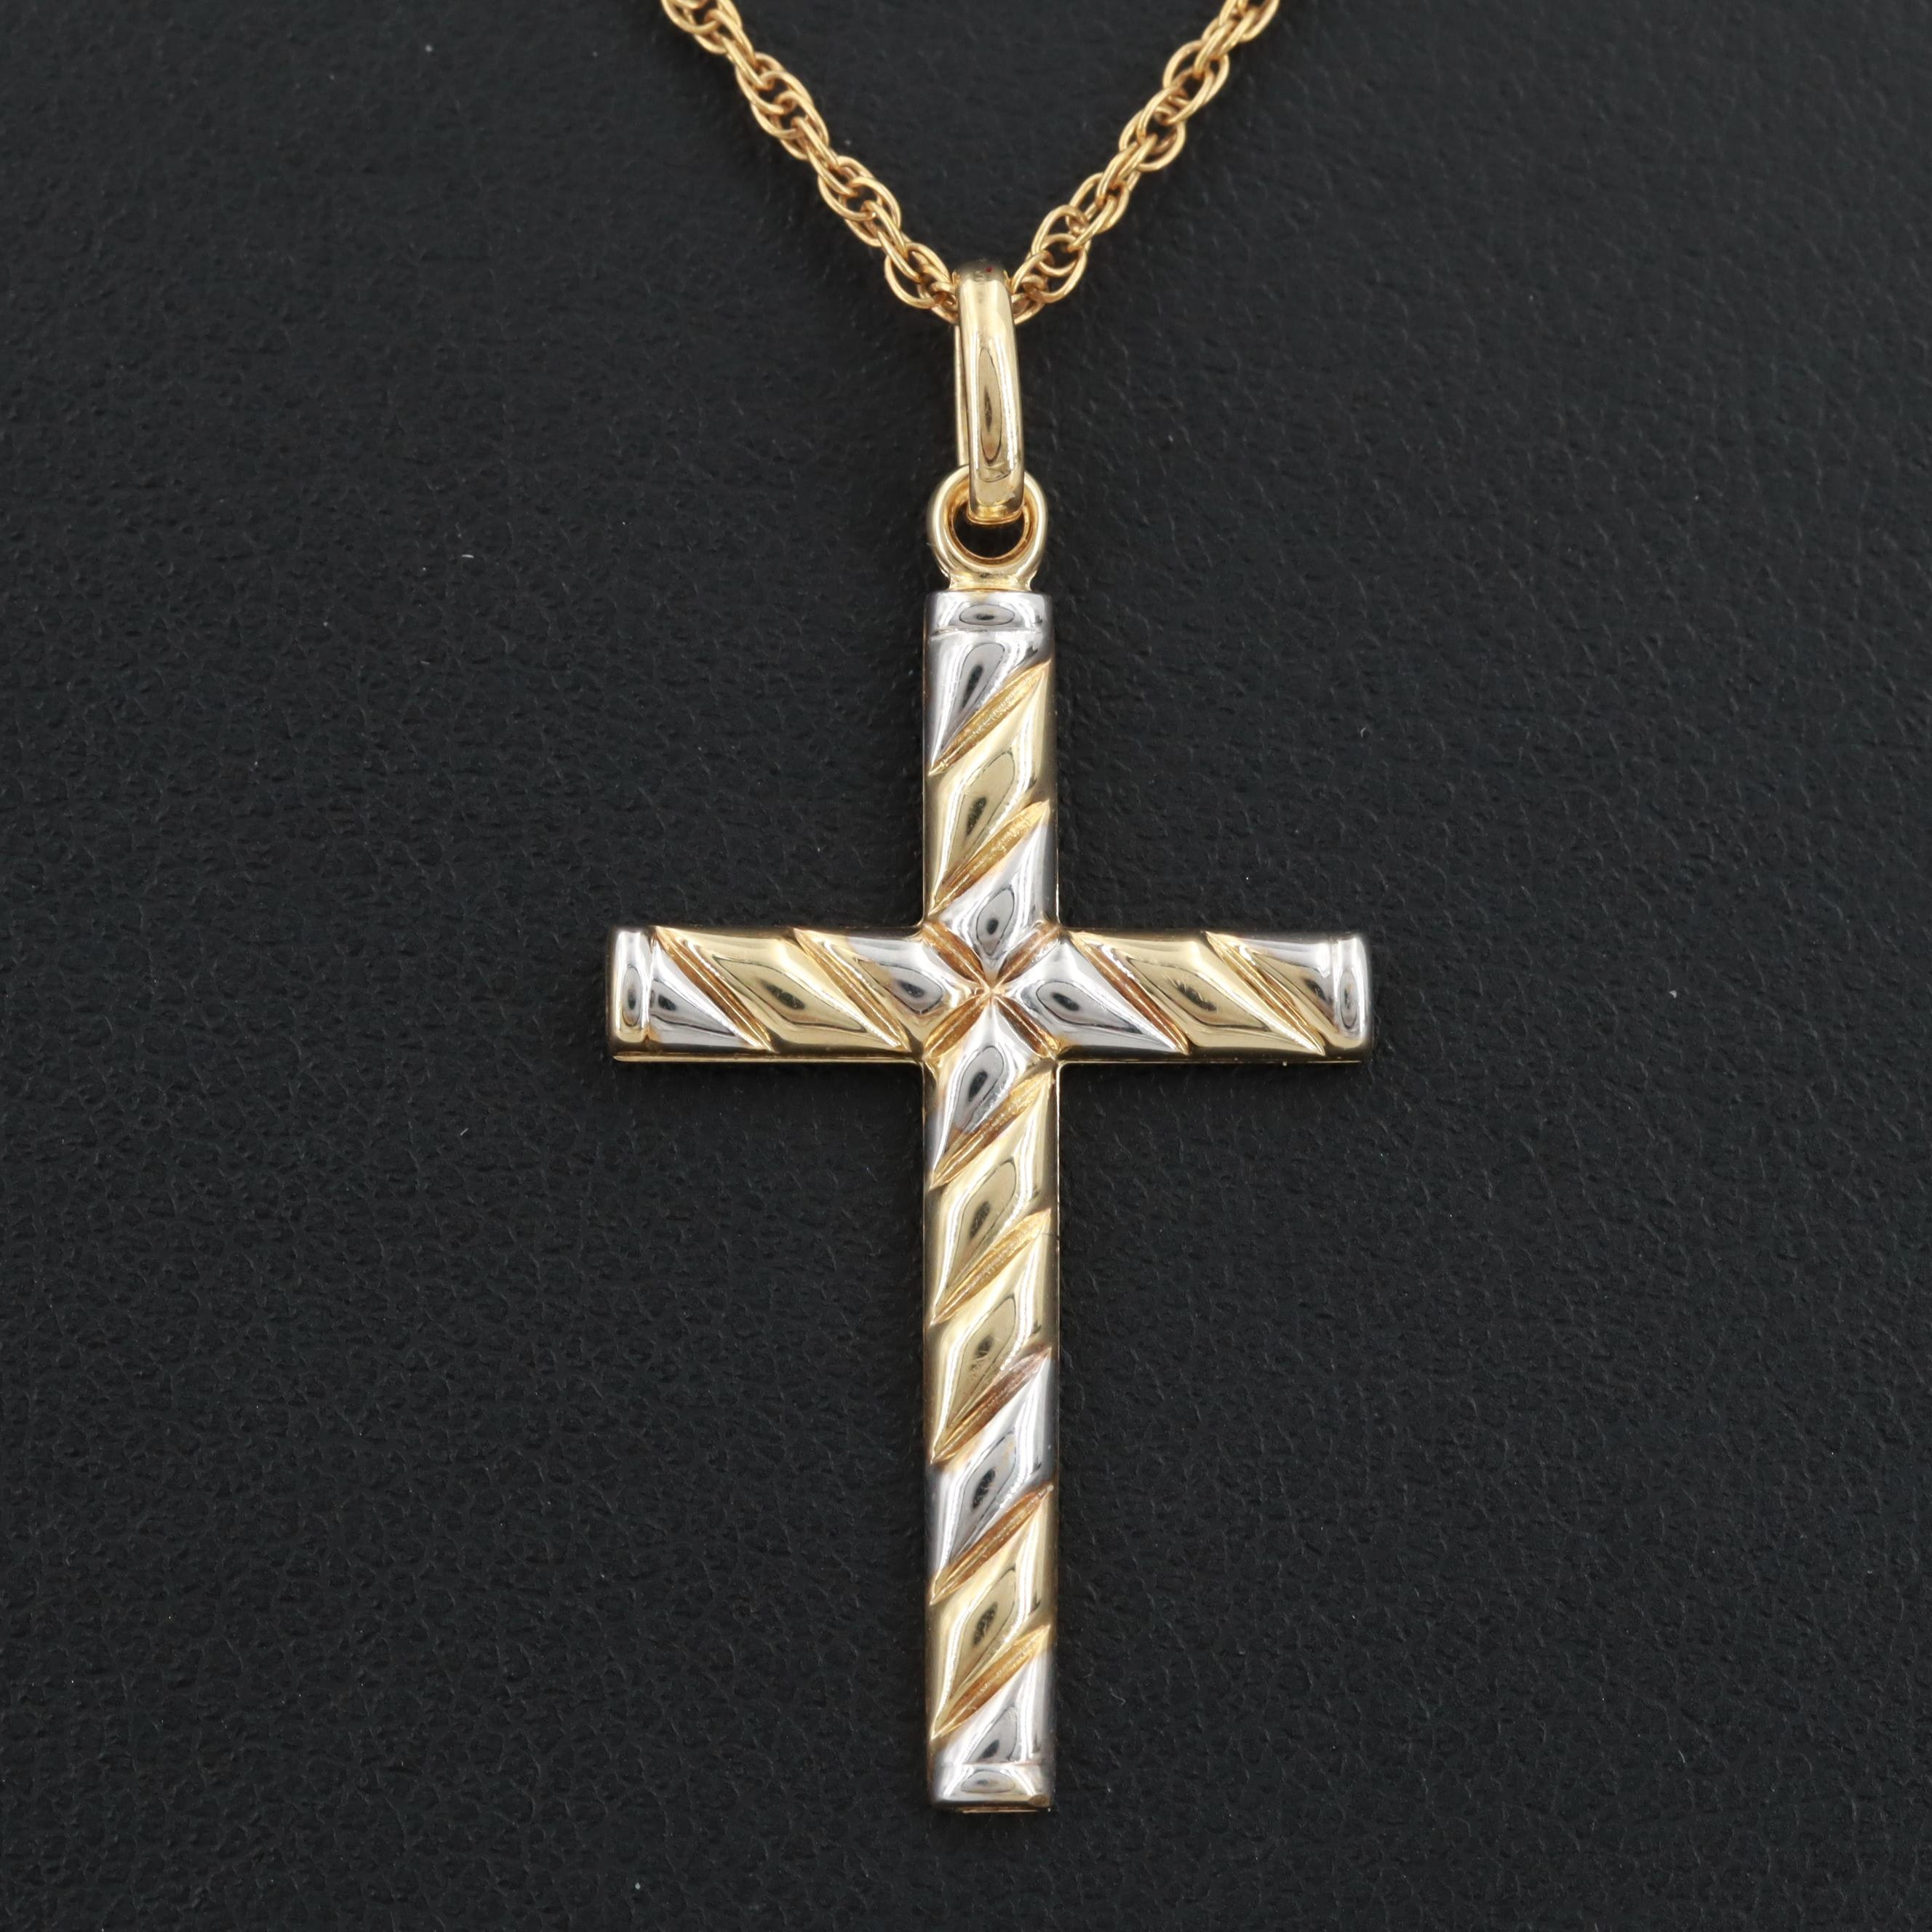 14K Yellow and White Gold Cross Pendant Necklace